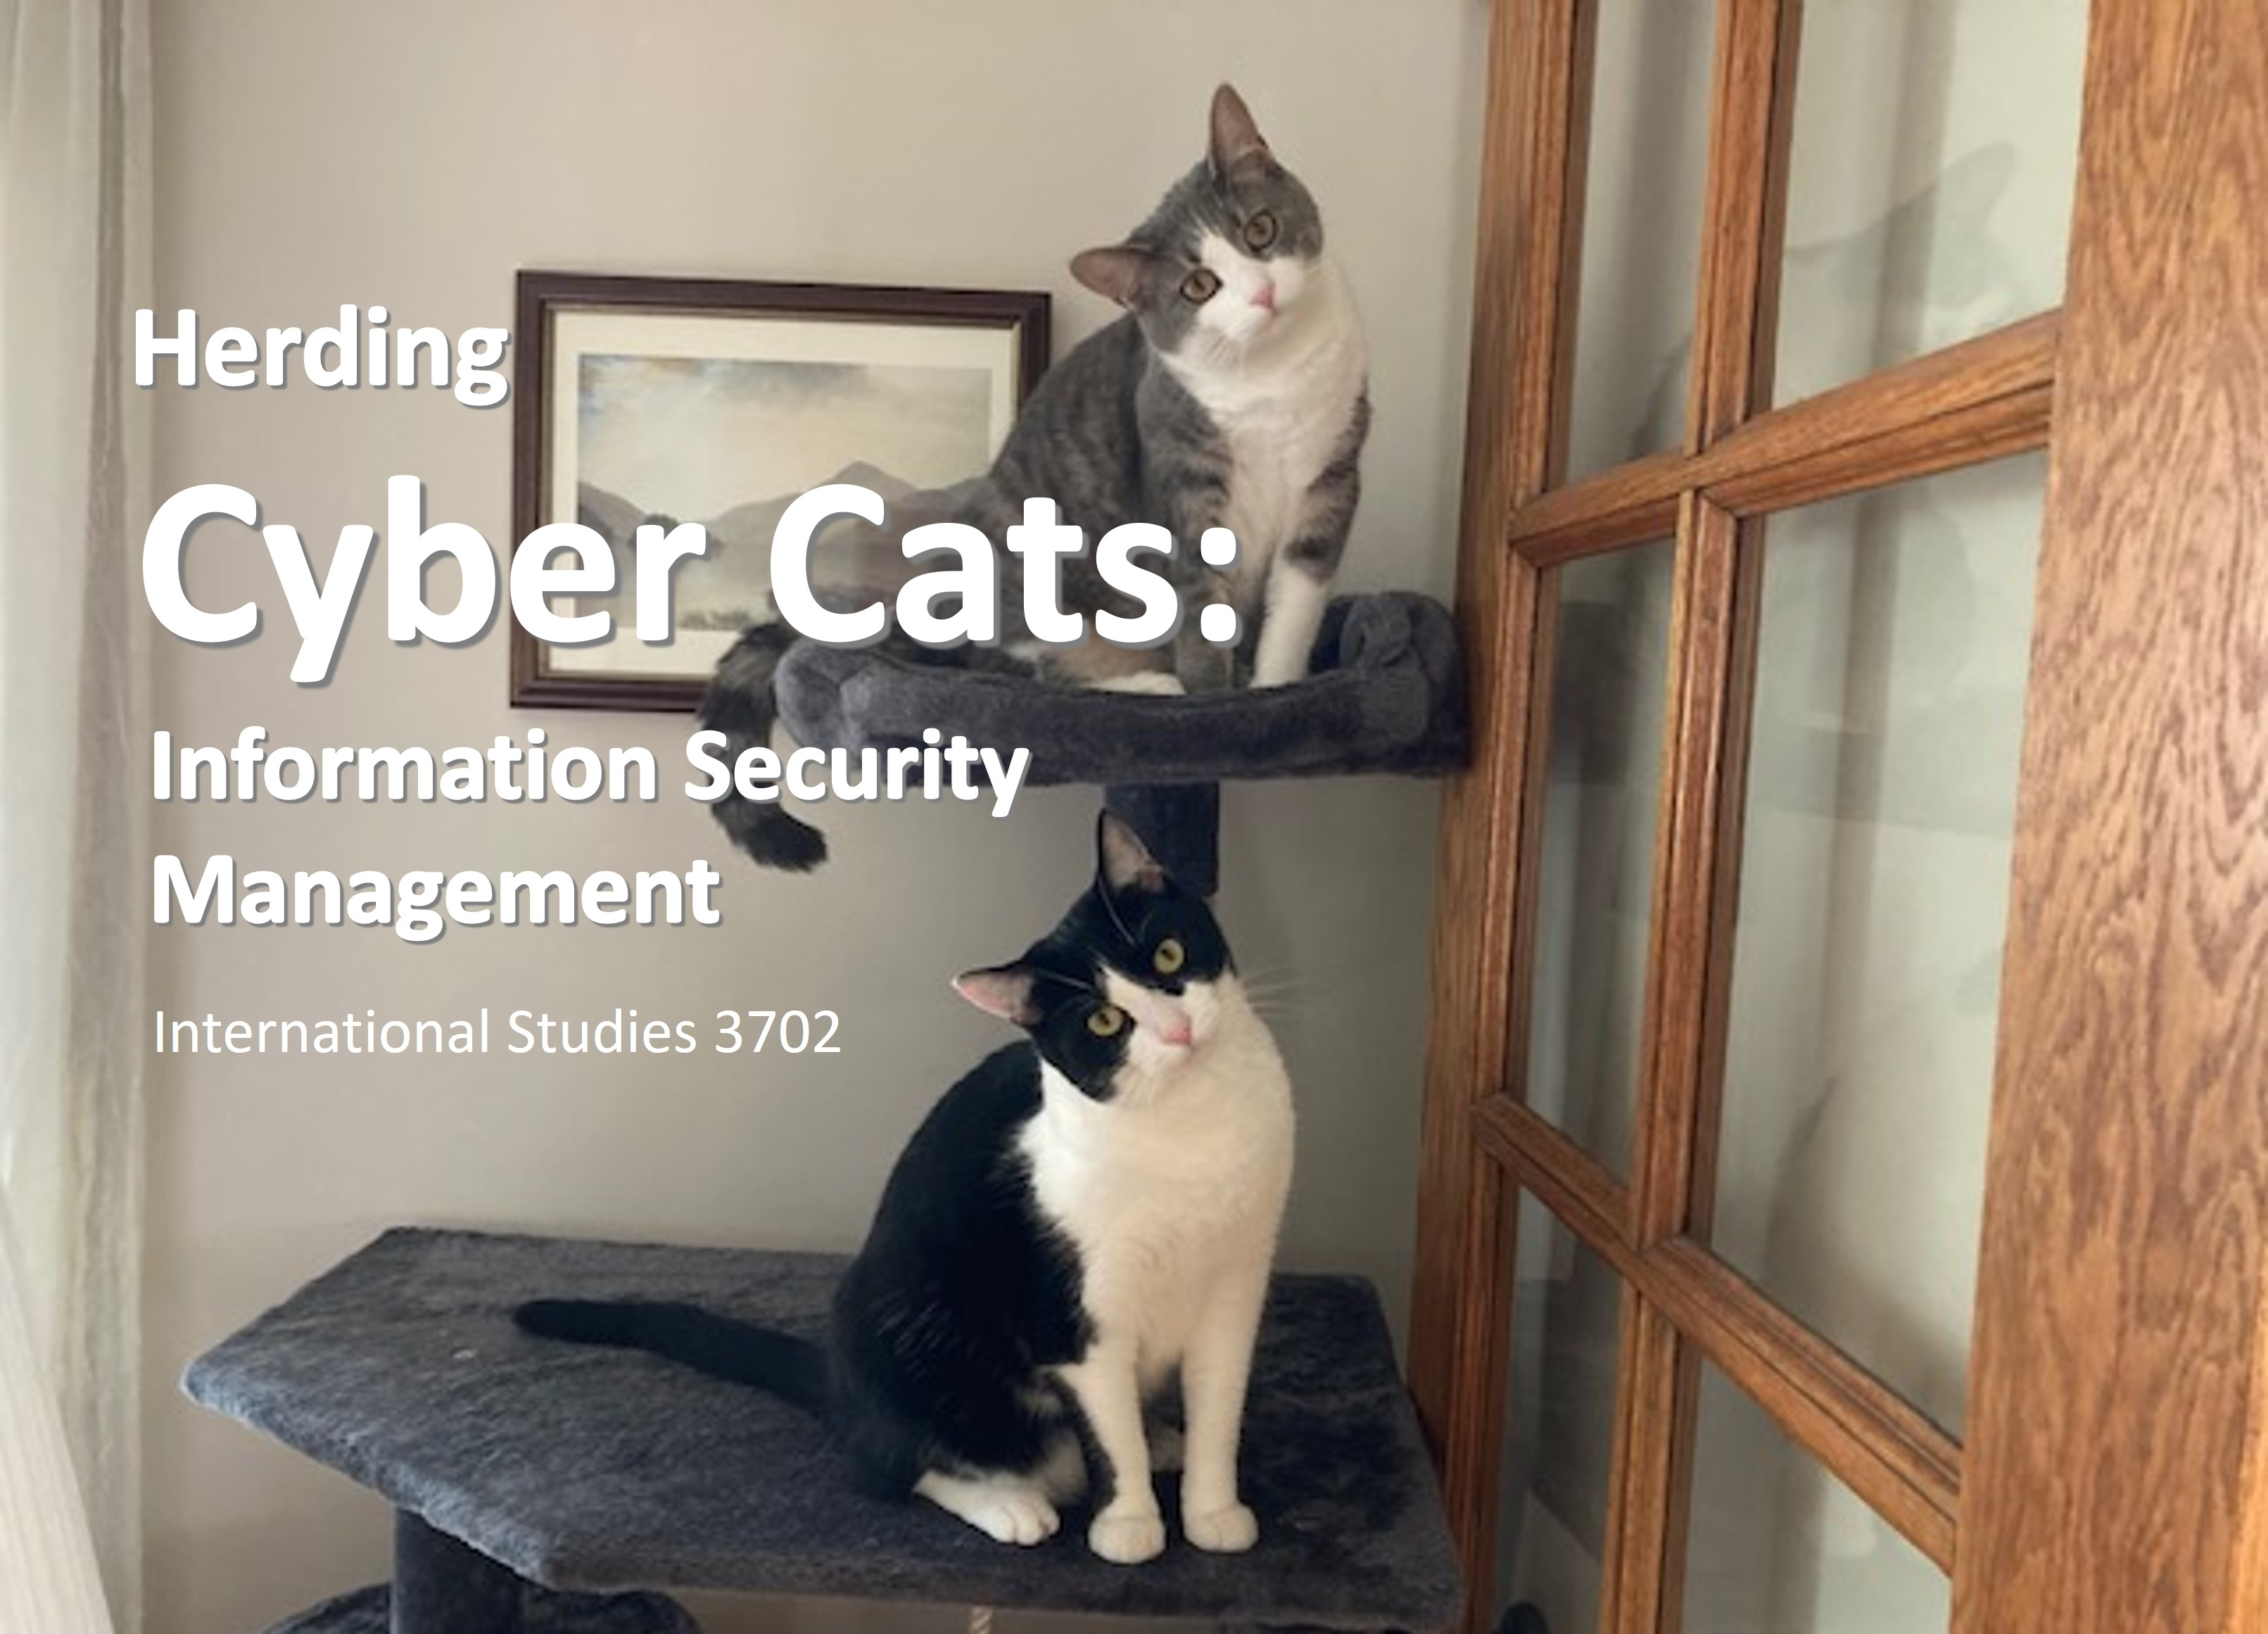 Herding Cyber Cats Course Flyer Icon